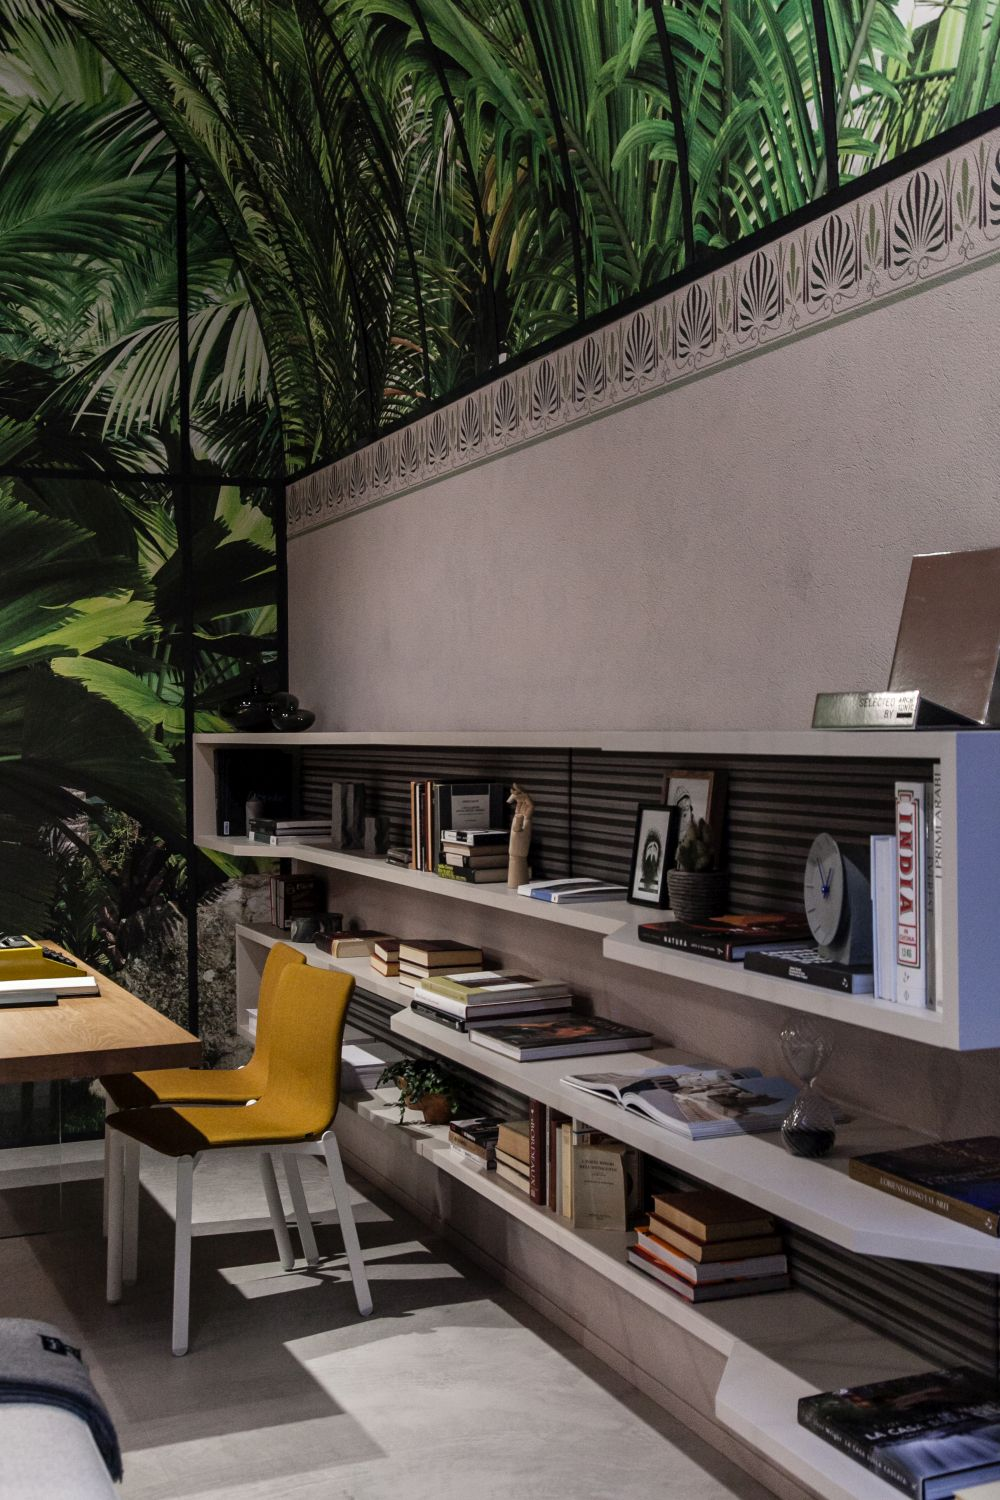 Long, horizontal bookcases can put an emphasis on a room's overall size and layout